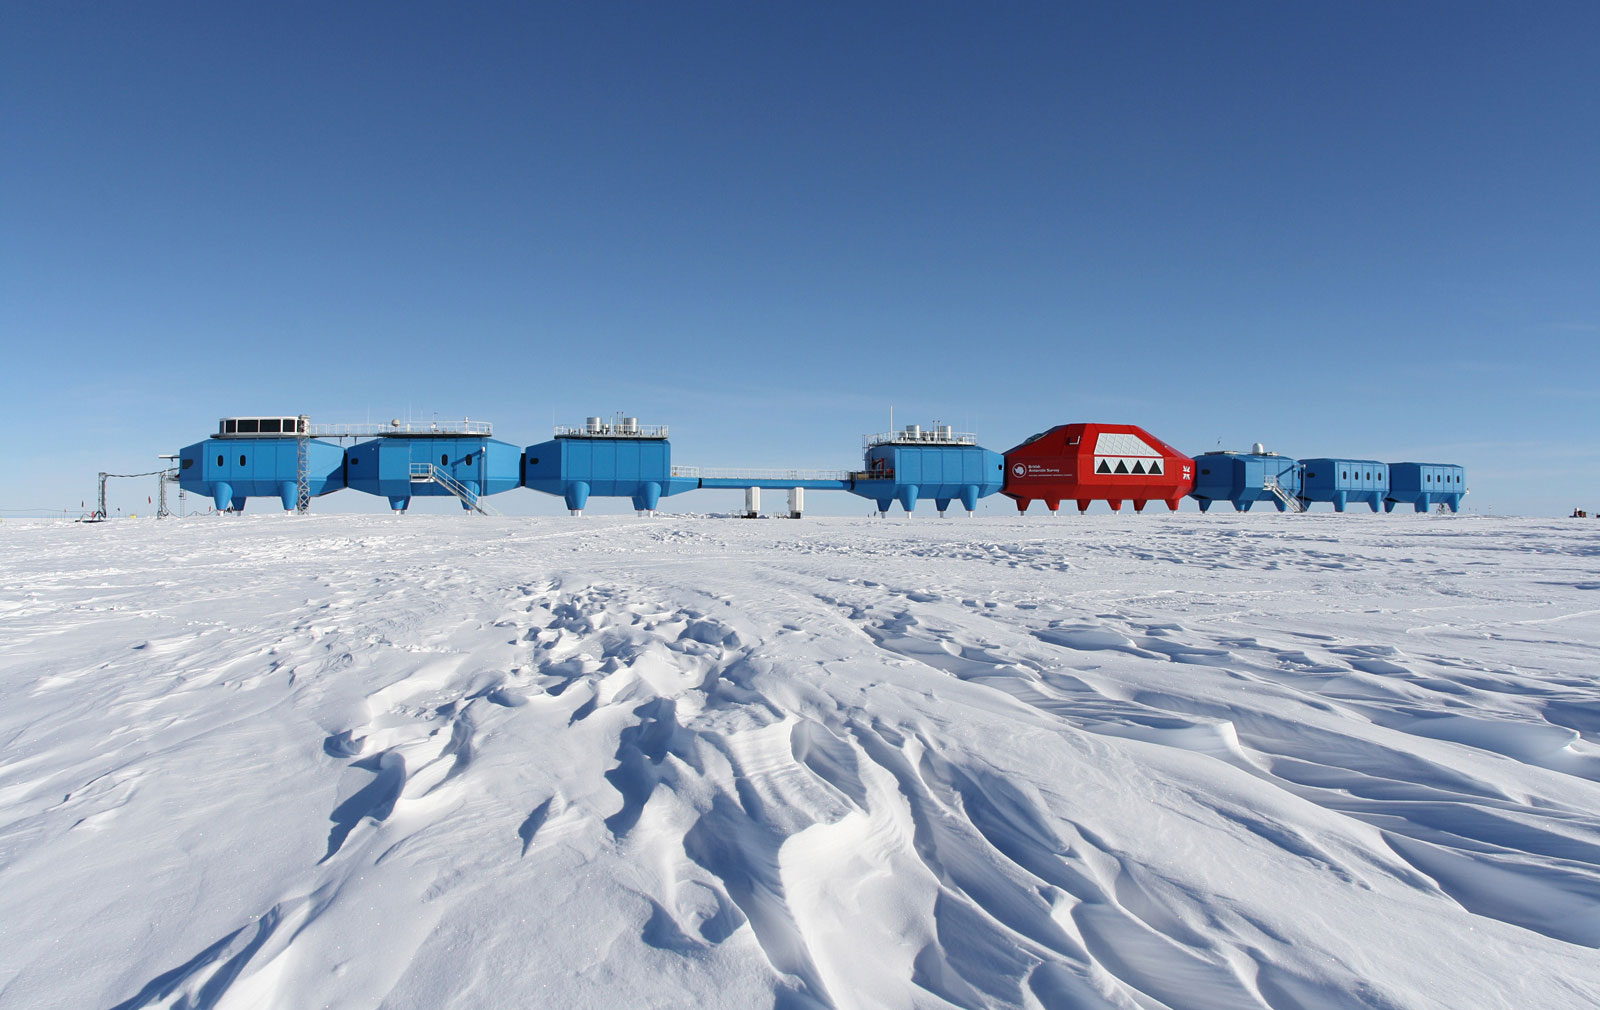 Prefab Antarctic research station